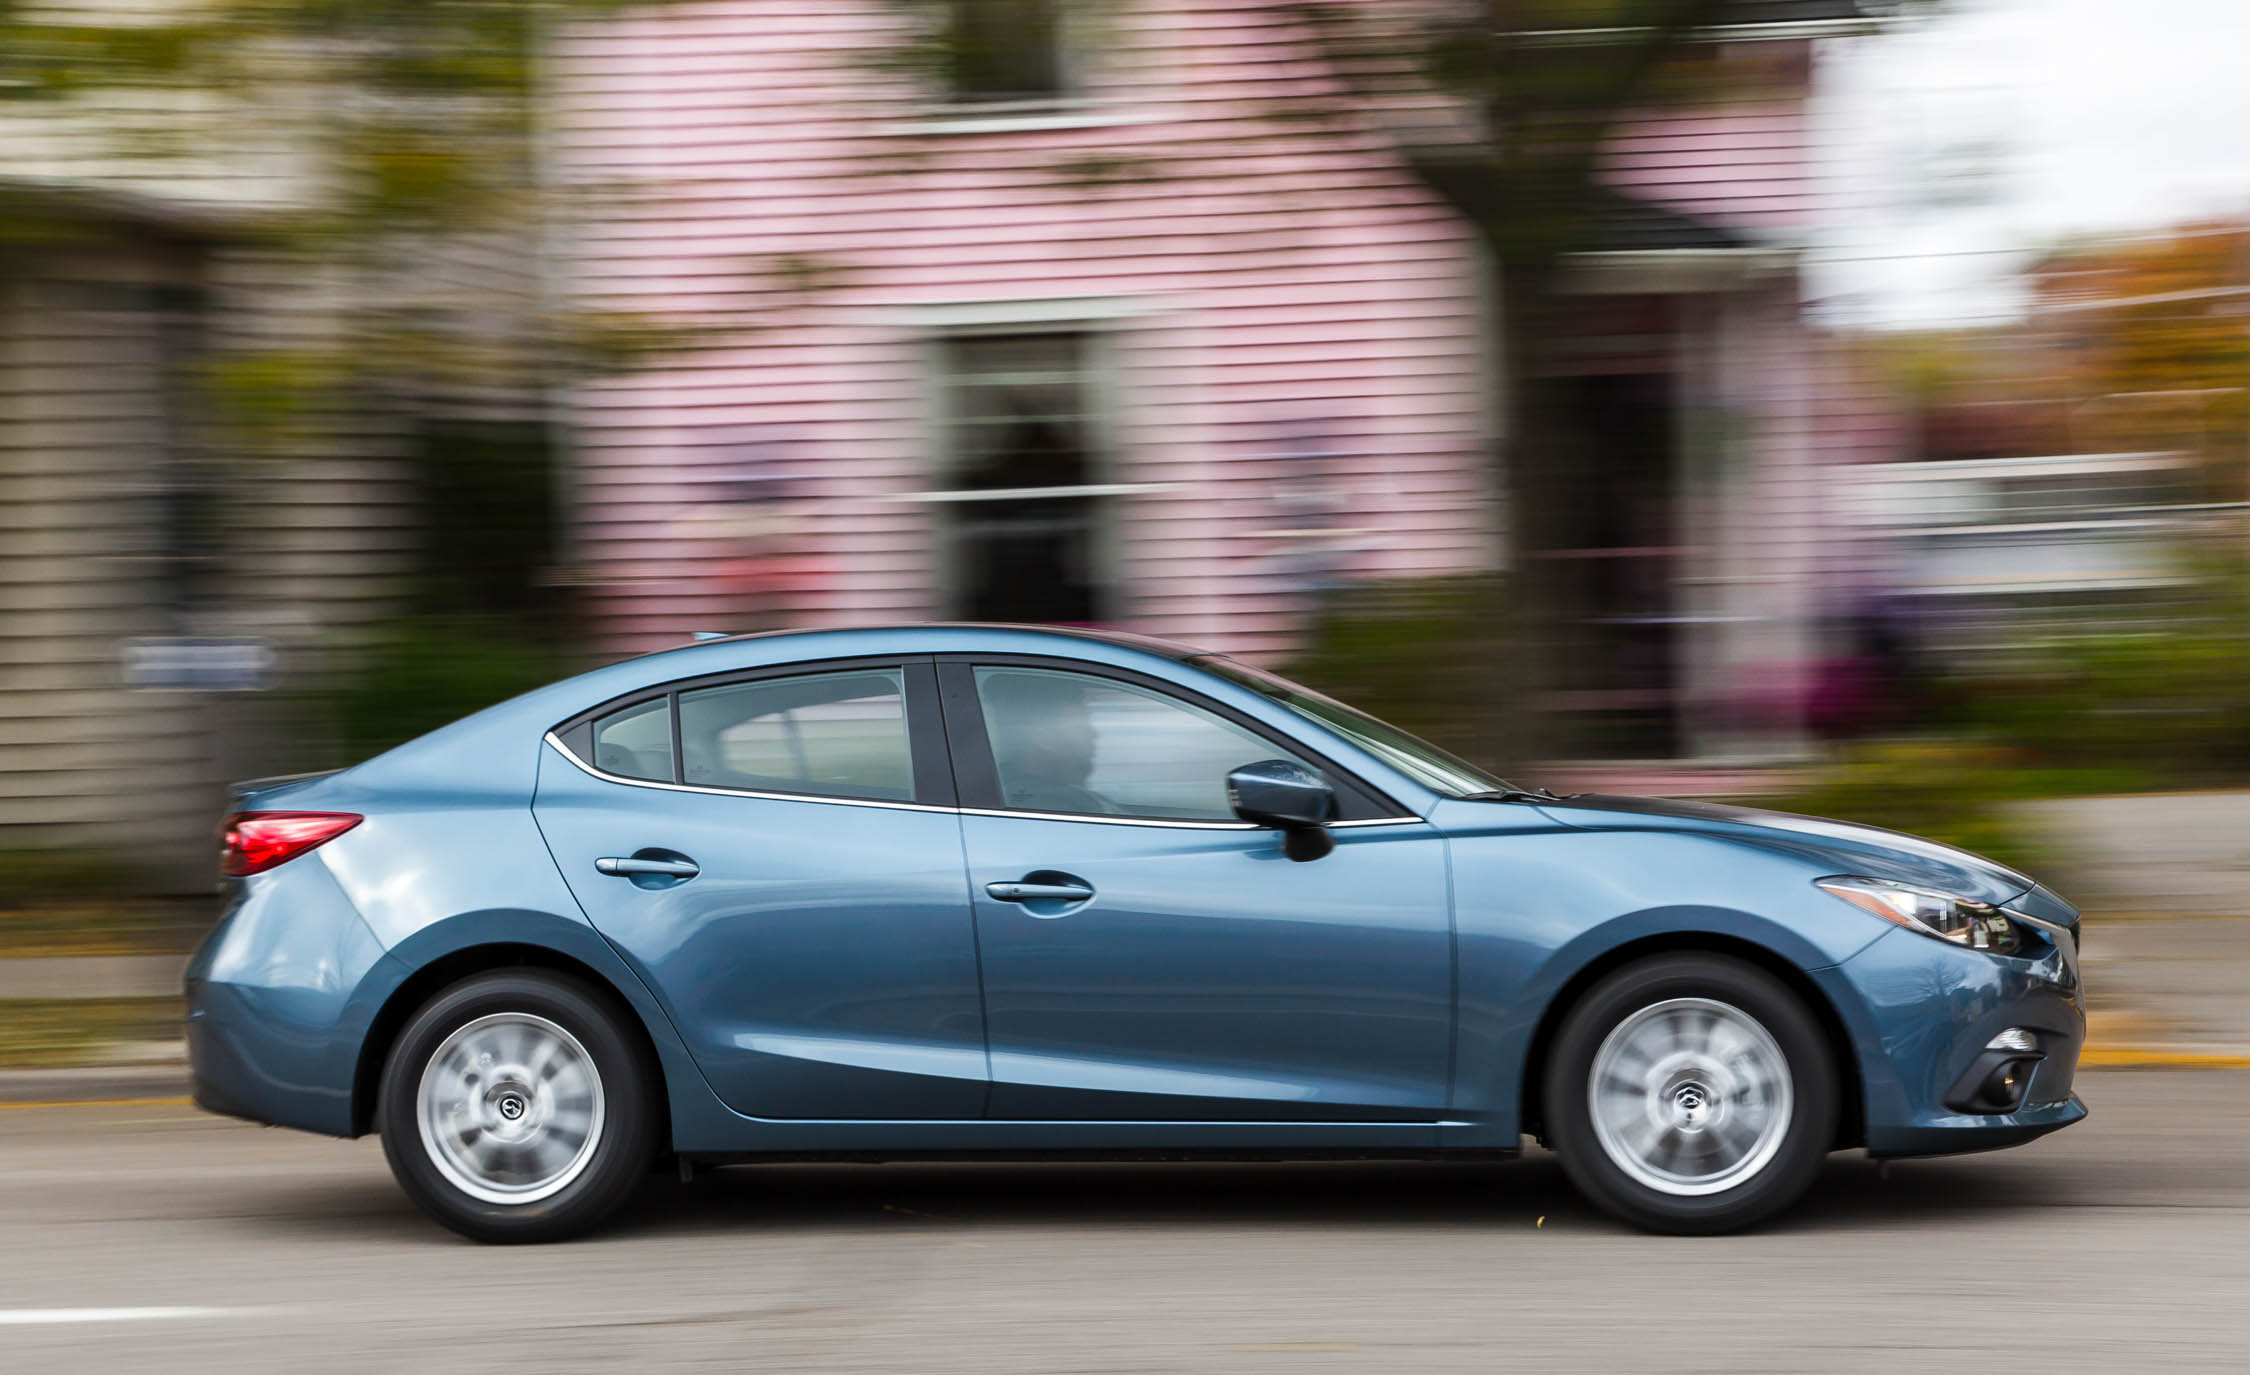 2016 Mazda 3 (View 4 of 22)